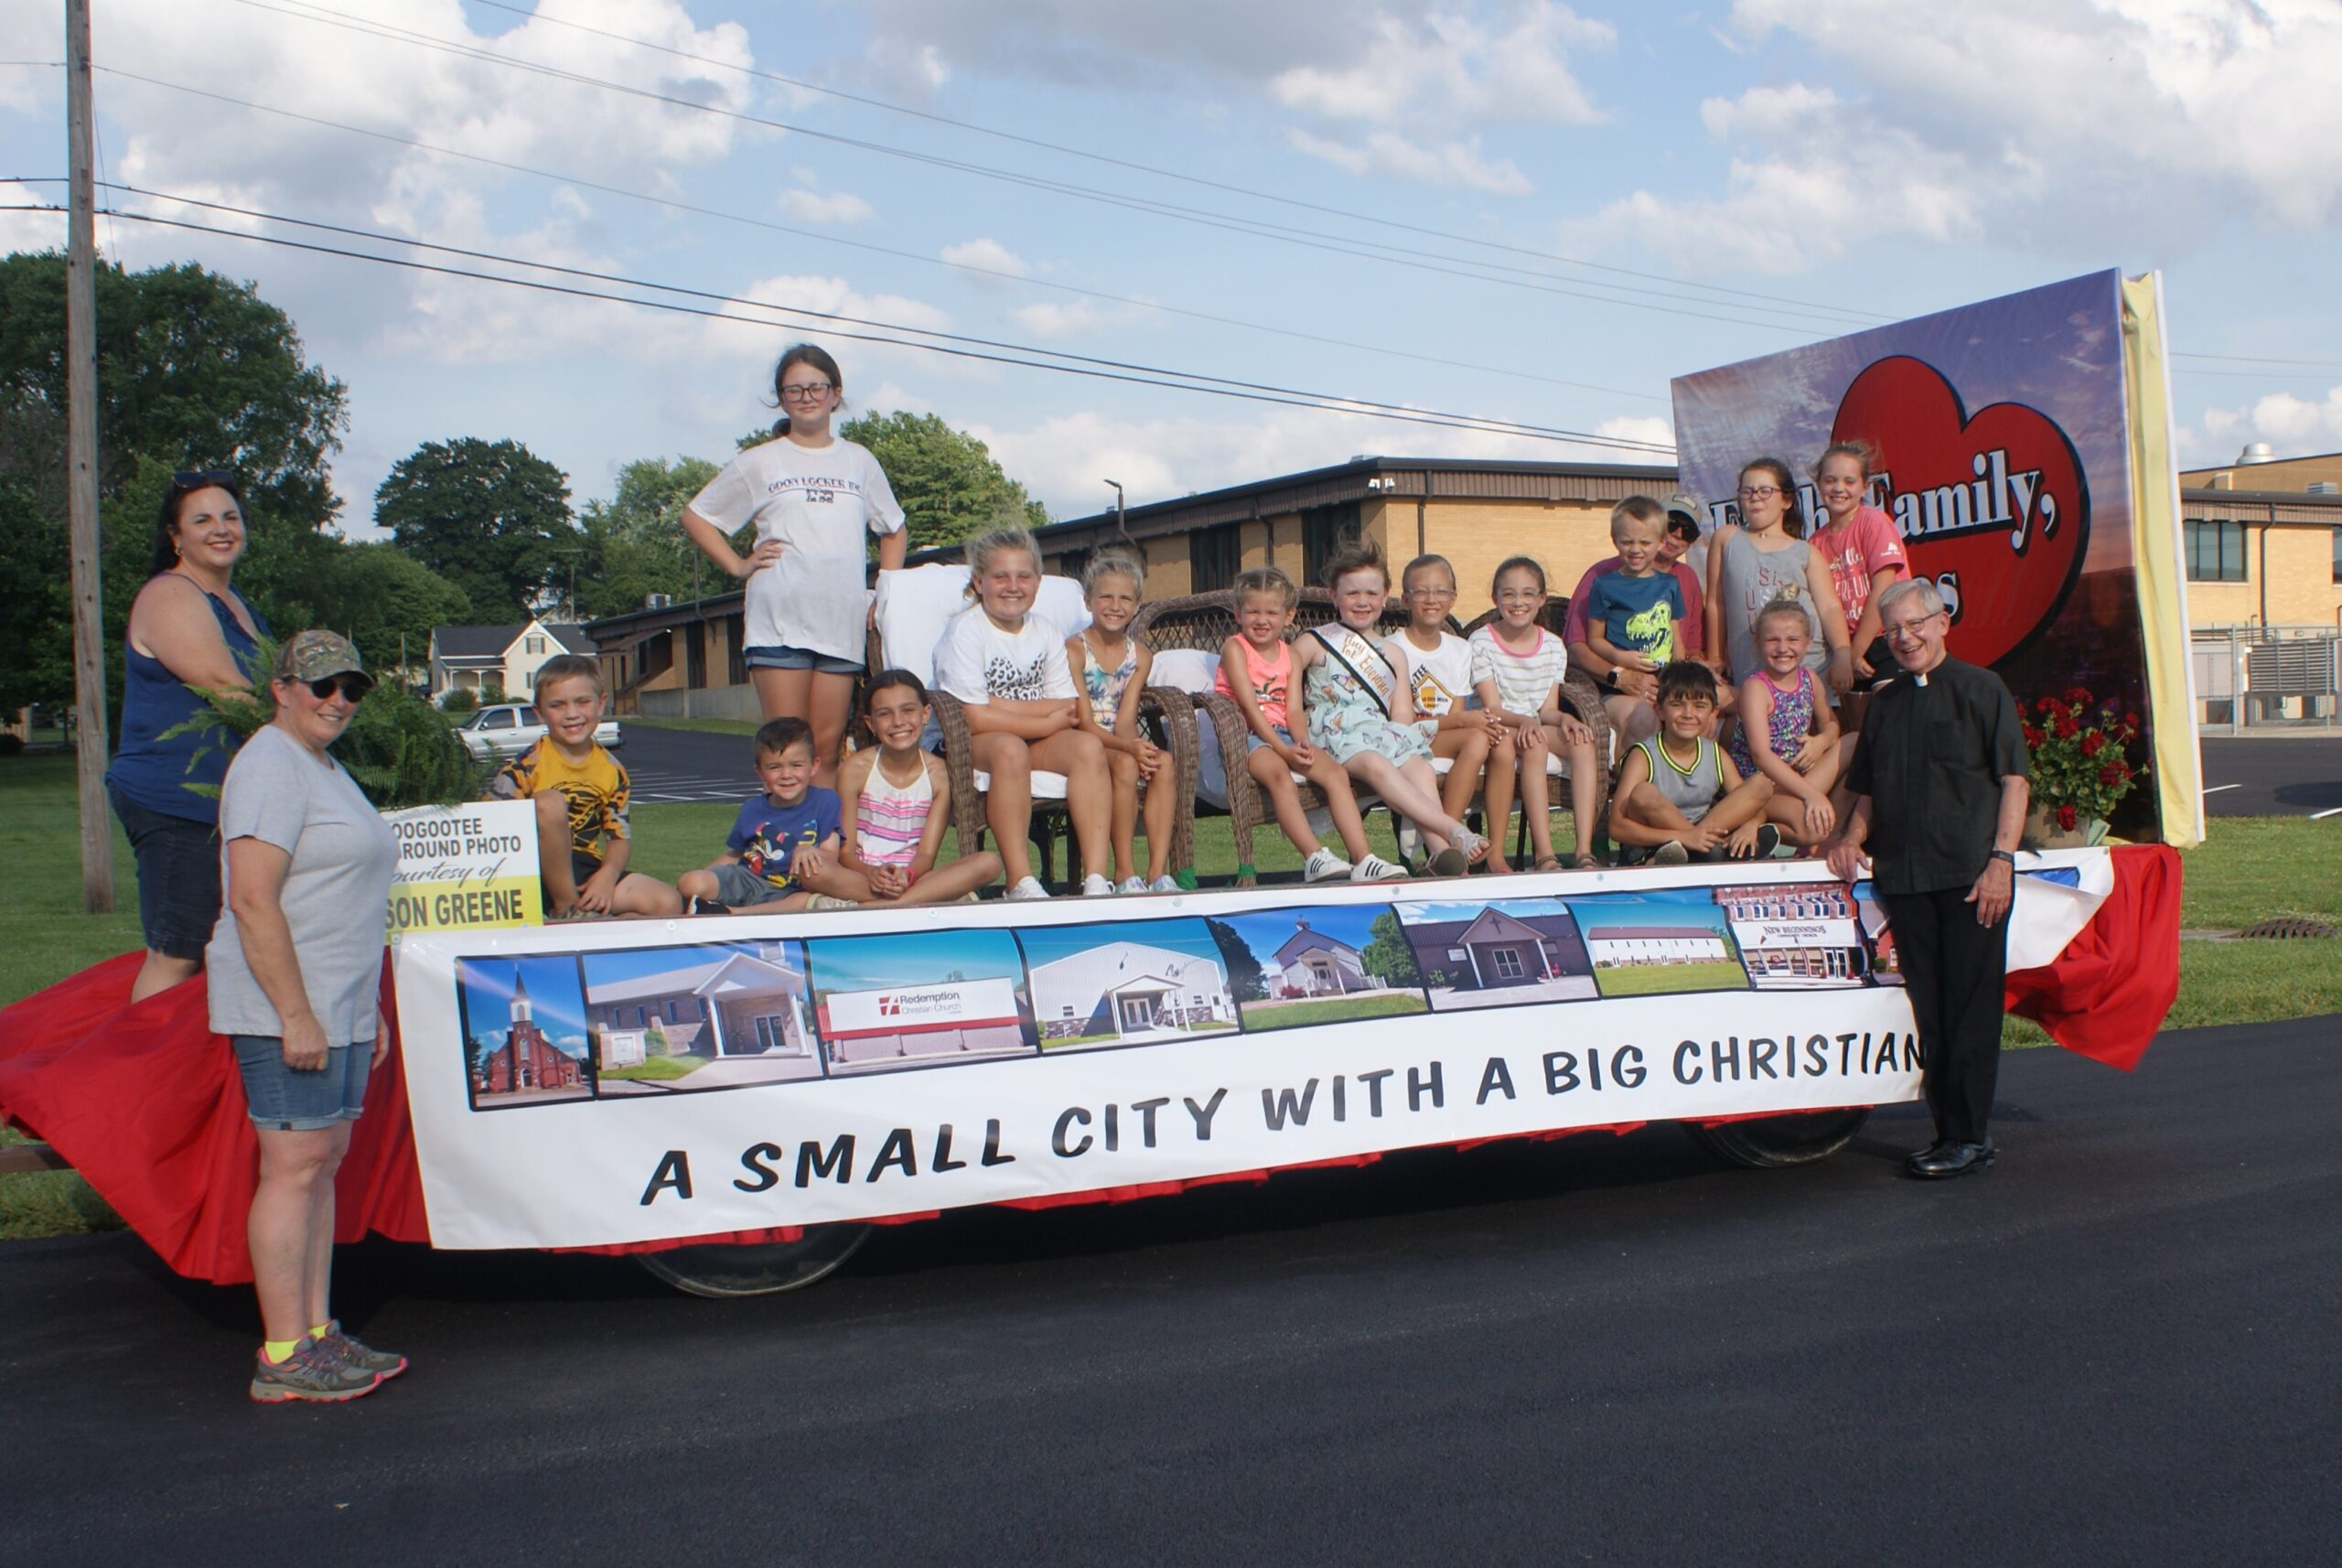 St. John the Evangelist Parish in Loogootee designed and constructed a float for the Loogootee Summerfest parade June 26. The parish is most appreciative of the efforts of parishioner Sandy Woods, whose vision, creativity and skills make the floats a major source of pride and enjoyment! Pictured are Sandy Woods, front row left, Blake Stoll, Garrett Mathies, Mason Mathies, Bella Hager, Father Kenneth Walker, pastor of St. John the Evangelist Parish in Loogootee and Diocese of Evansville Judicial Vicar, Jackie Esch, second row left, Natalie Willoughby, Hailey Thomas, Jerzie Wildman, Avrie Bratton, Bailey Esch, Zoey Harder, Avery Wagoner, Reid Johnson, Paula Ringwald, Haley Hager and Mackenzie Johnson.  Submitted photo